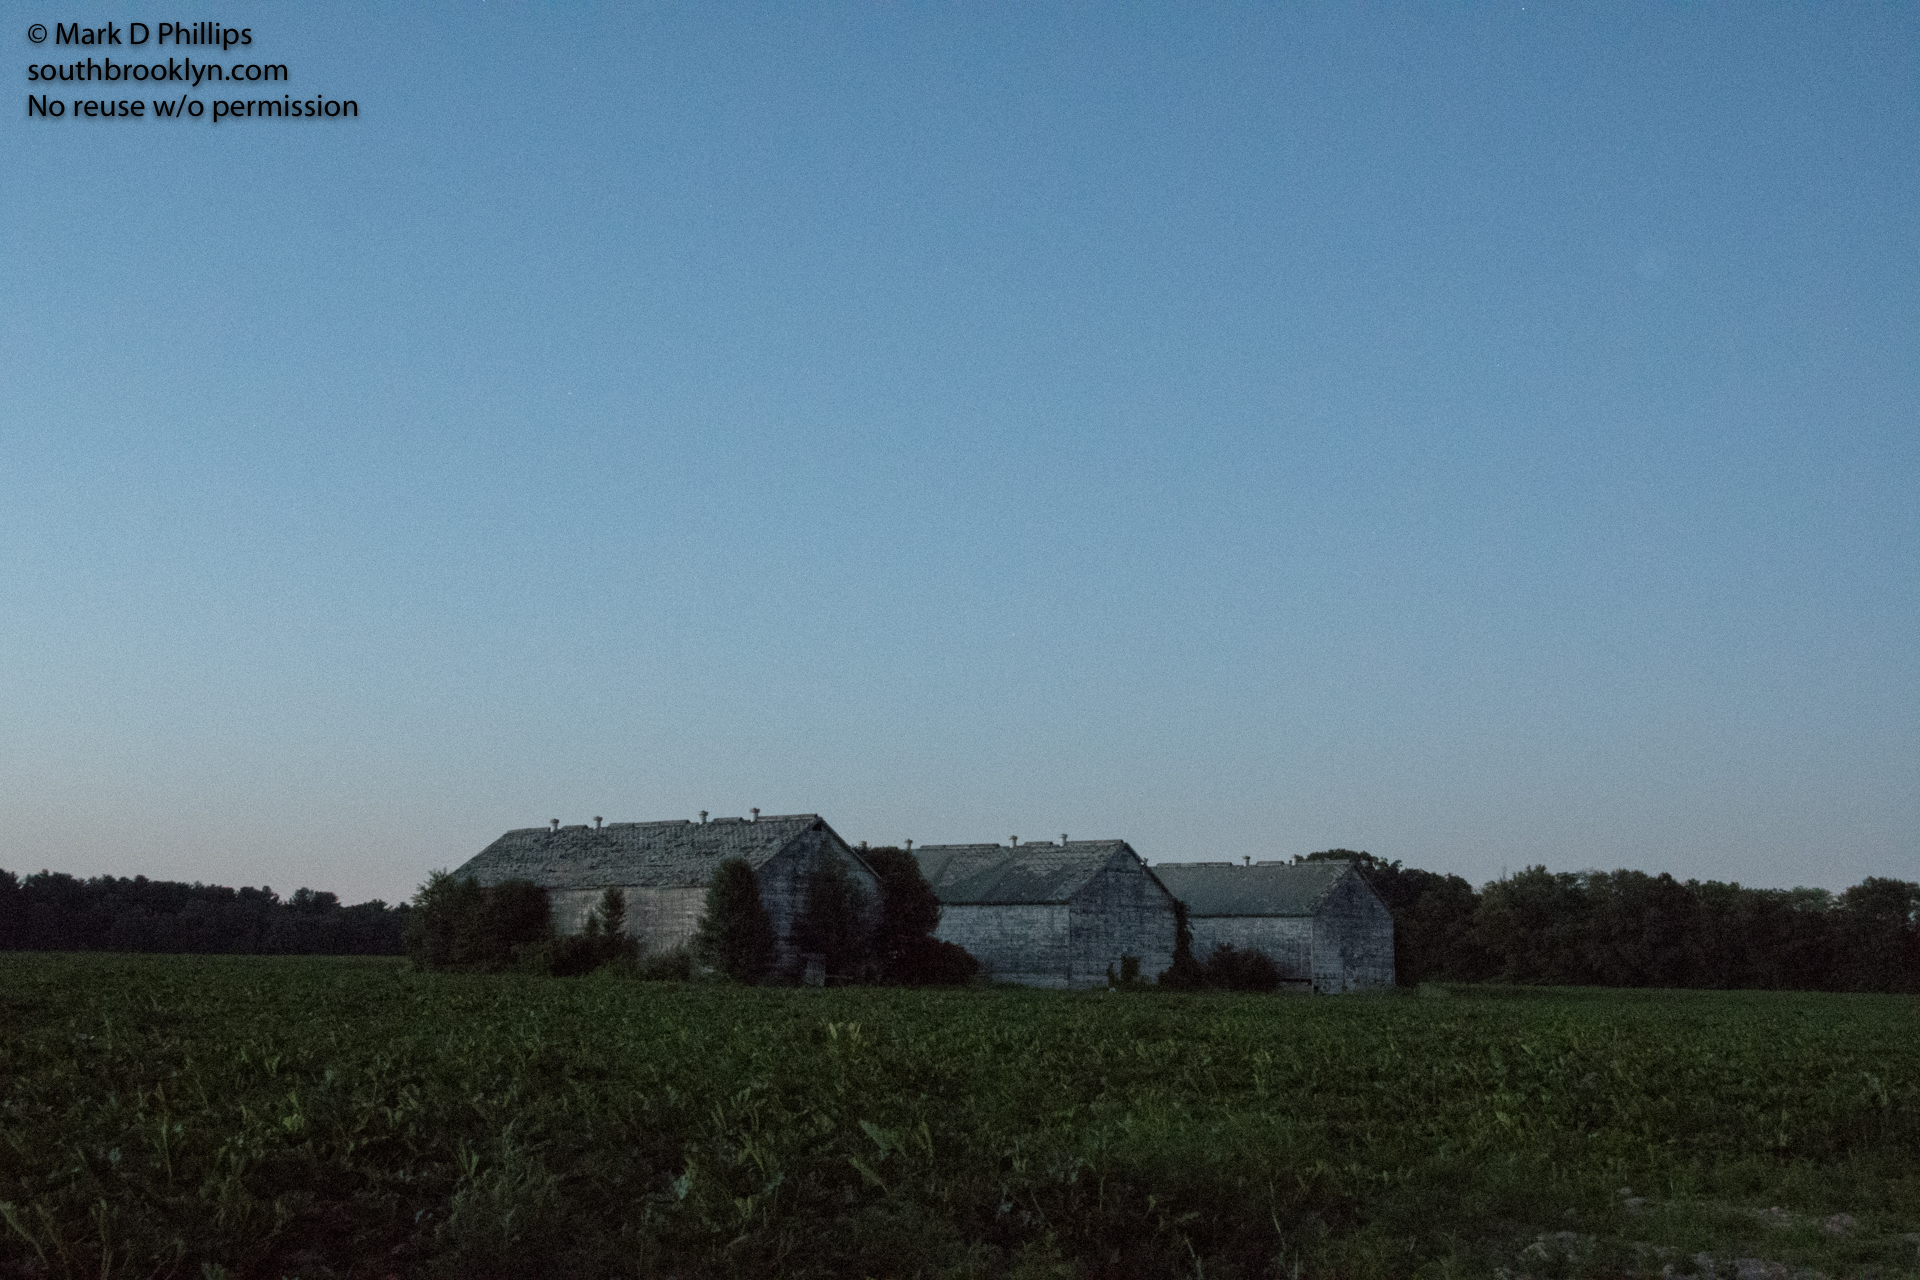 Tobacco barns after sunset in Simsbury, Connecticutt.